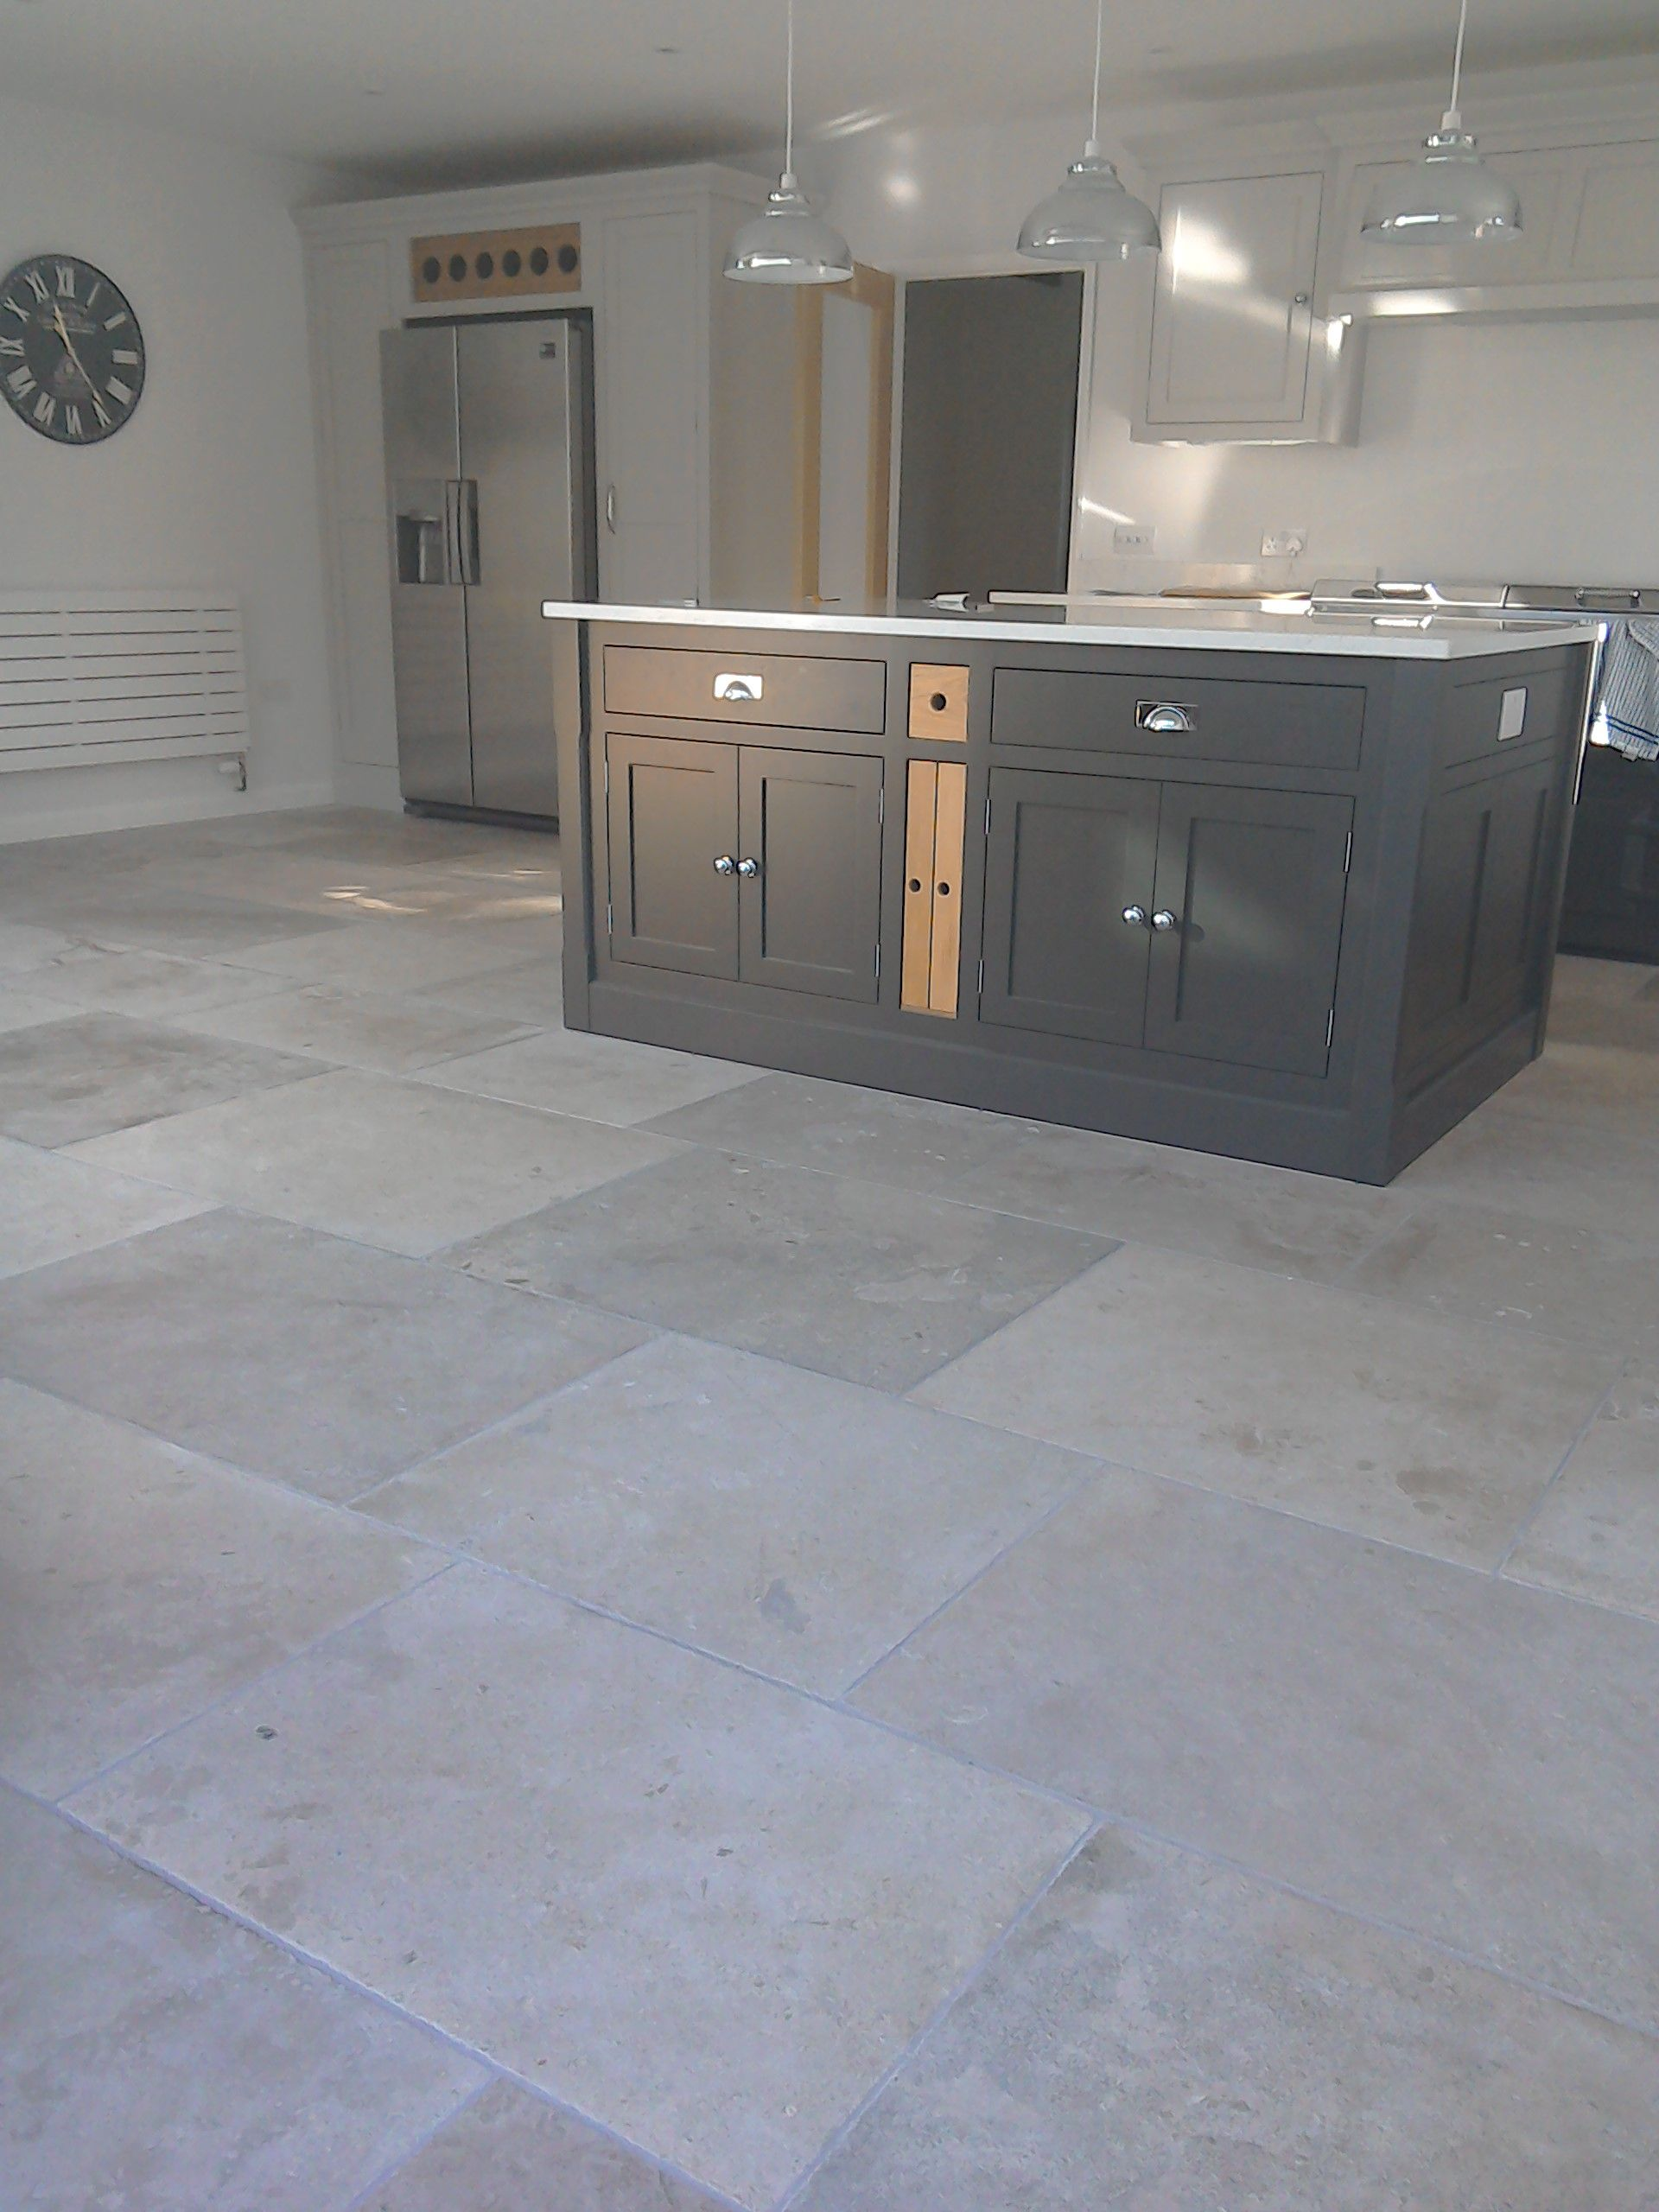 Manoir Grey French Limestone Flooring | Natural Stone Consulting | Limestone Flooring, Grey Kitchen Floor, French Limestone Floor